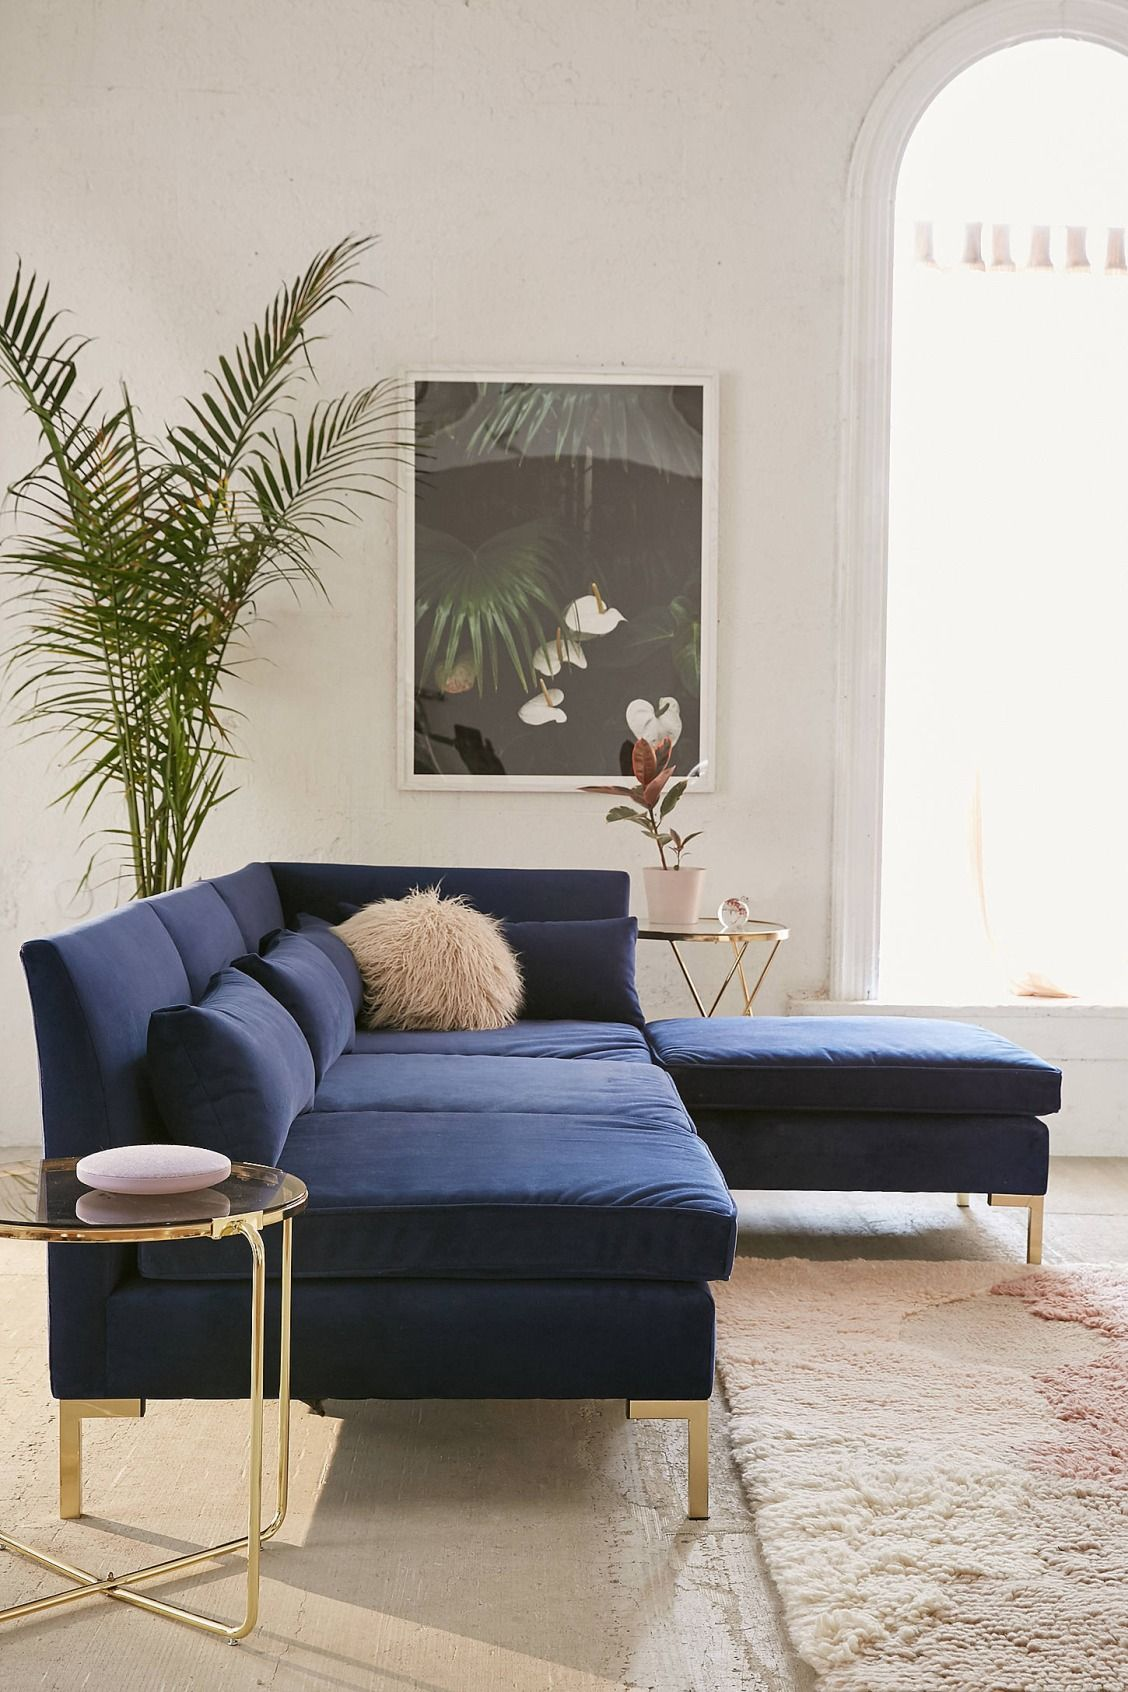 Shop Cecilia Velvet Sectional Sofa At Urban Outfitters Today. We Carry All  The Latest Styles, Colors And Brands For You To Choose From Right Here.